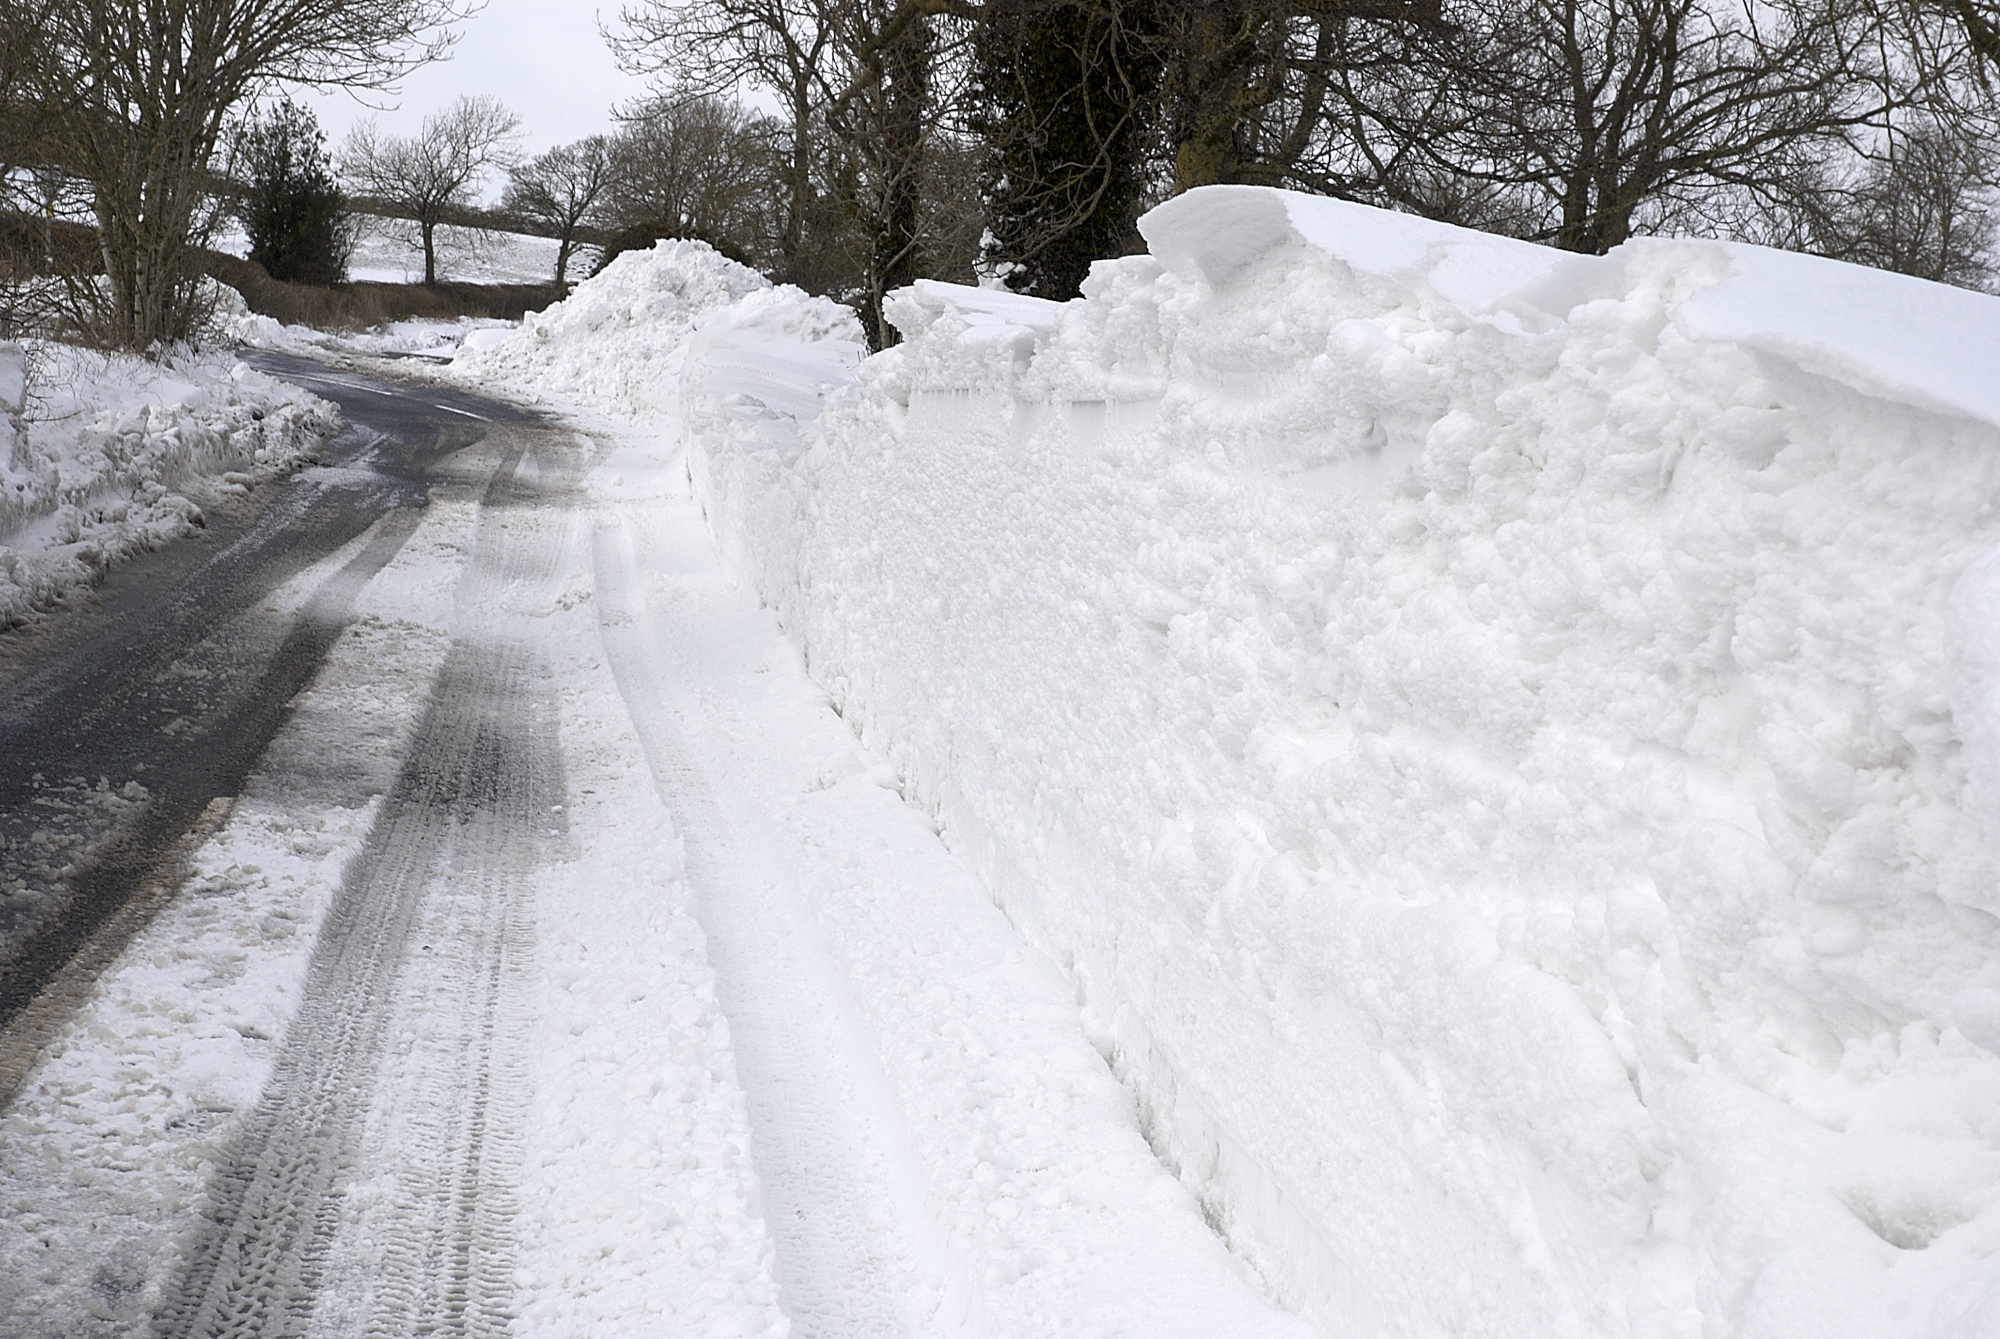 Access to Ashbourne? Snow Problem! | PARWICH.ORG